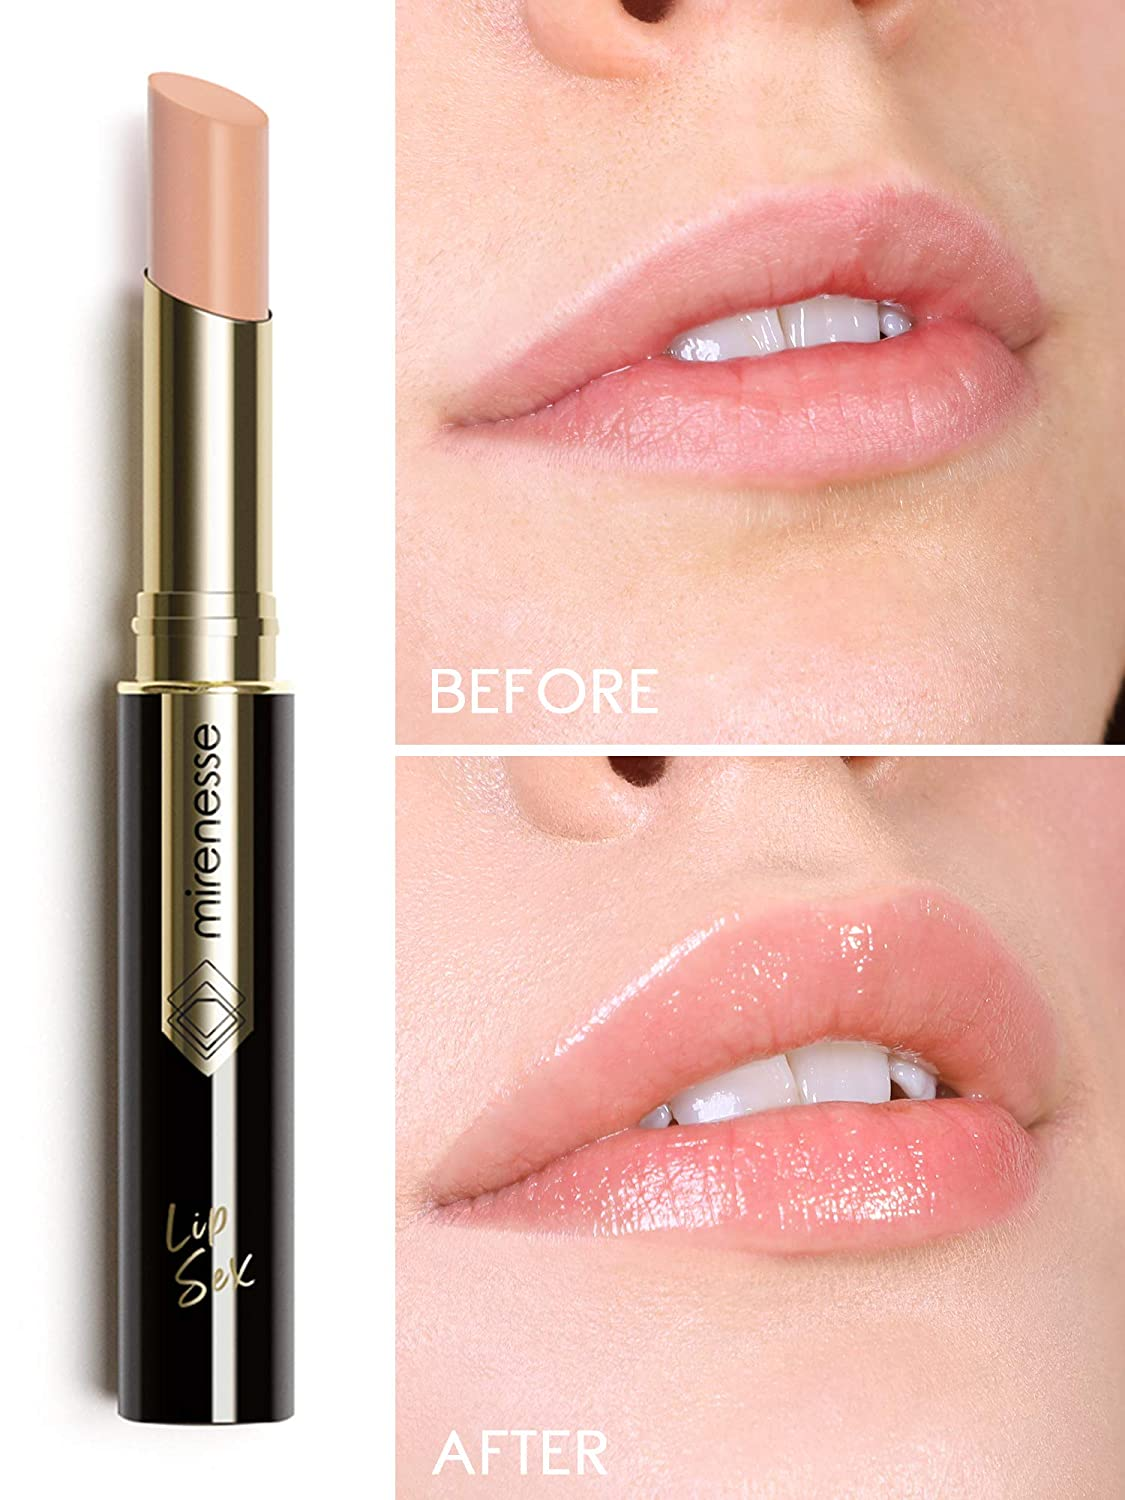 Mirenesse Lip Sex Plump & Fill Tint, Hydrating Plumping Lipstick Balm with Tint and Vitamin C + Vitamin E, Vegan and Toxin Free, 3 Passion Peach .07 oz